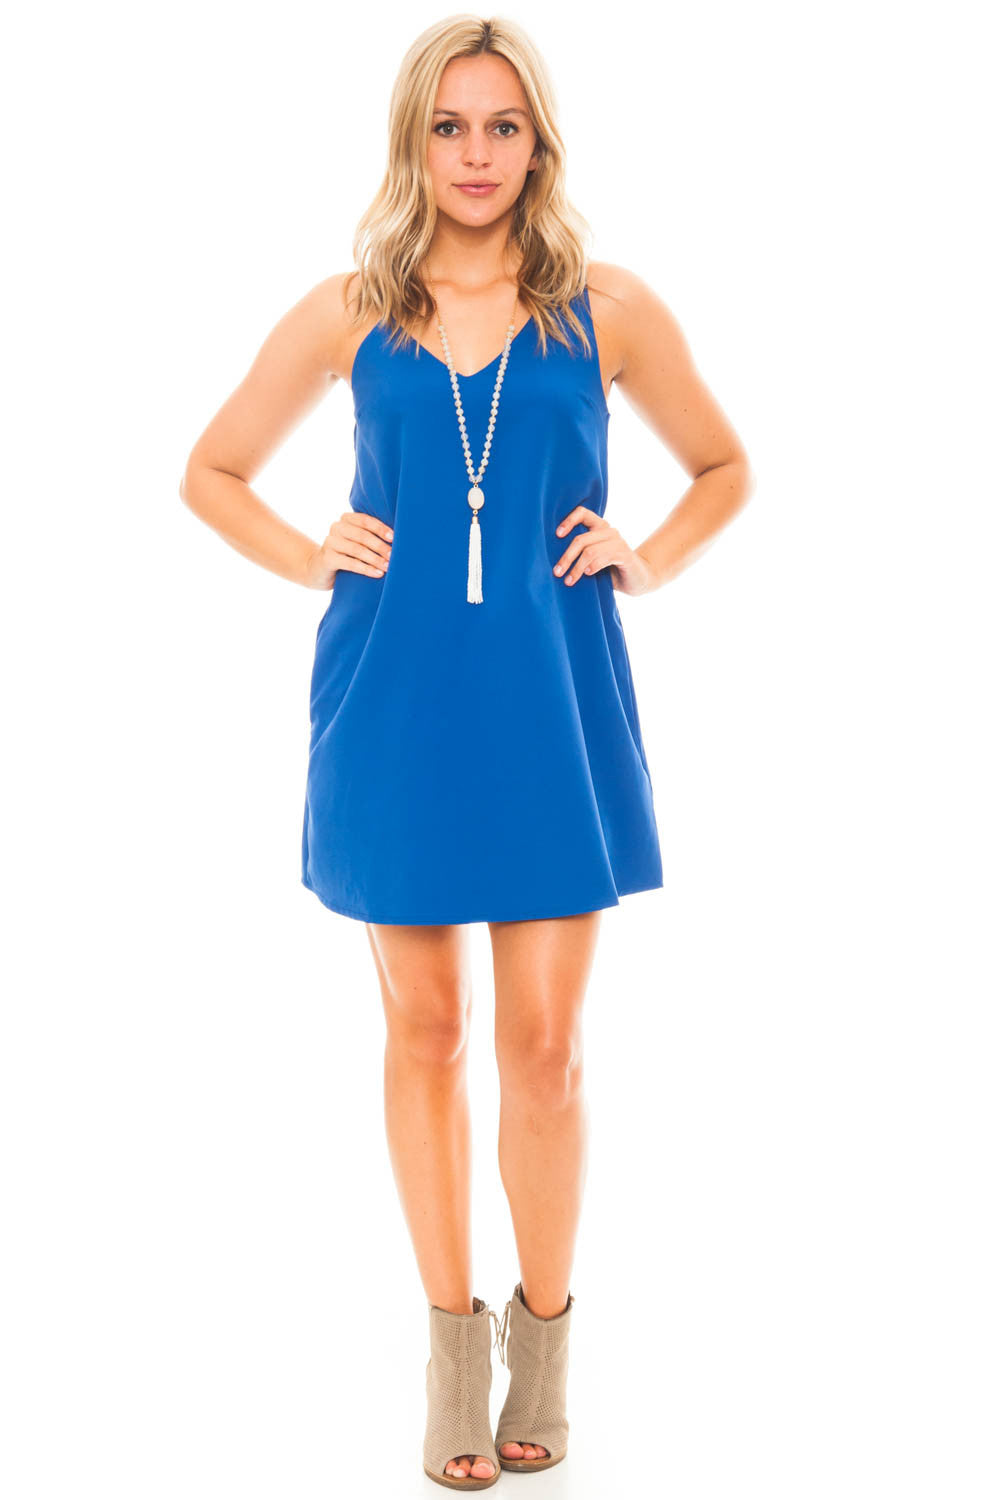 Dress - Chiffon V-Neck Dress with Pockets